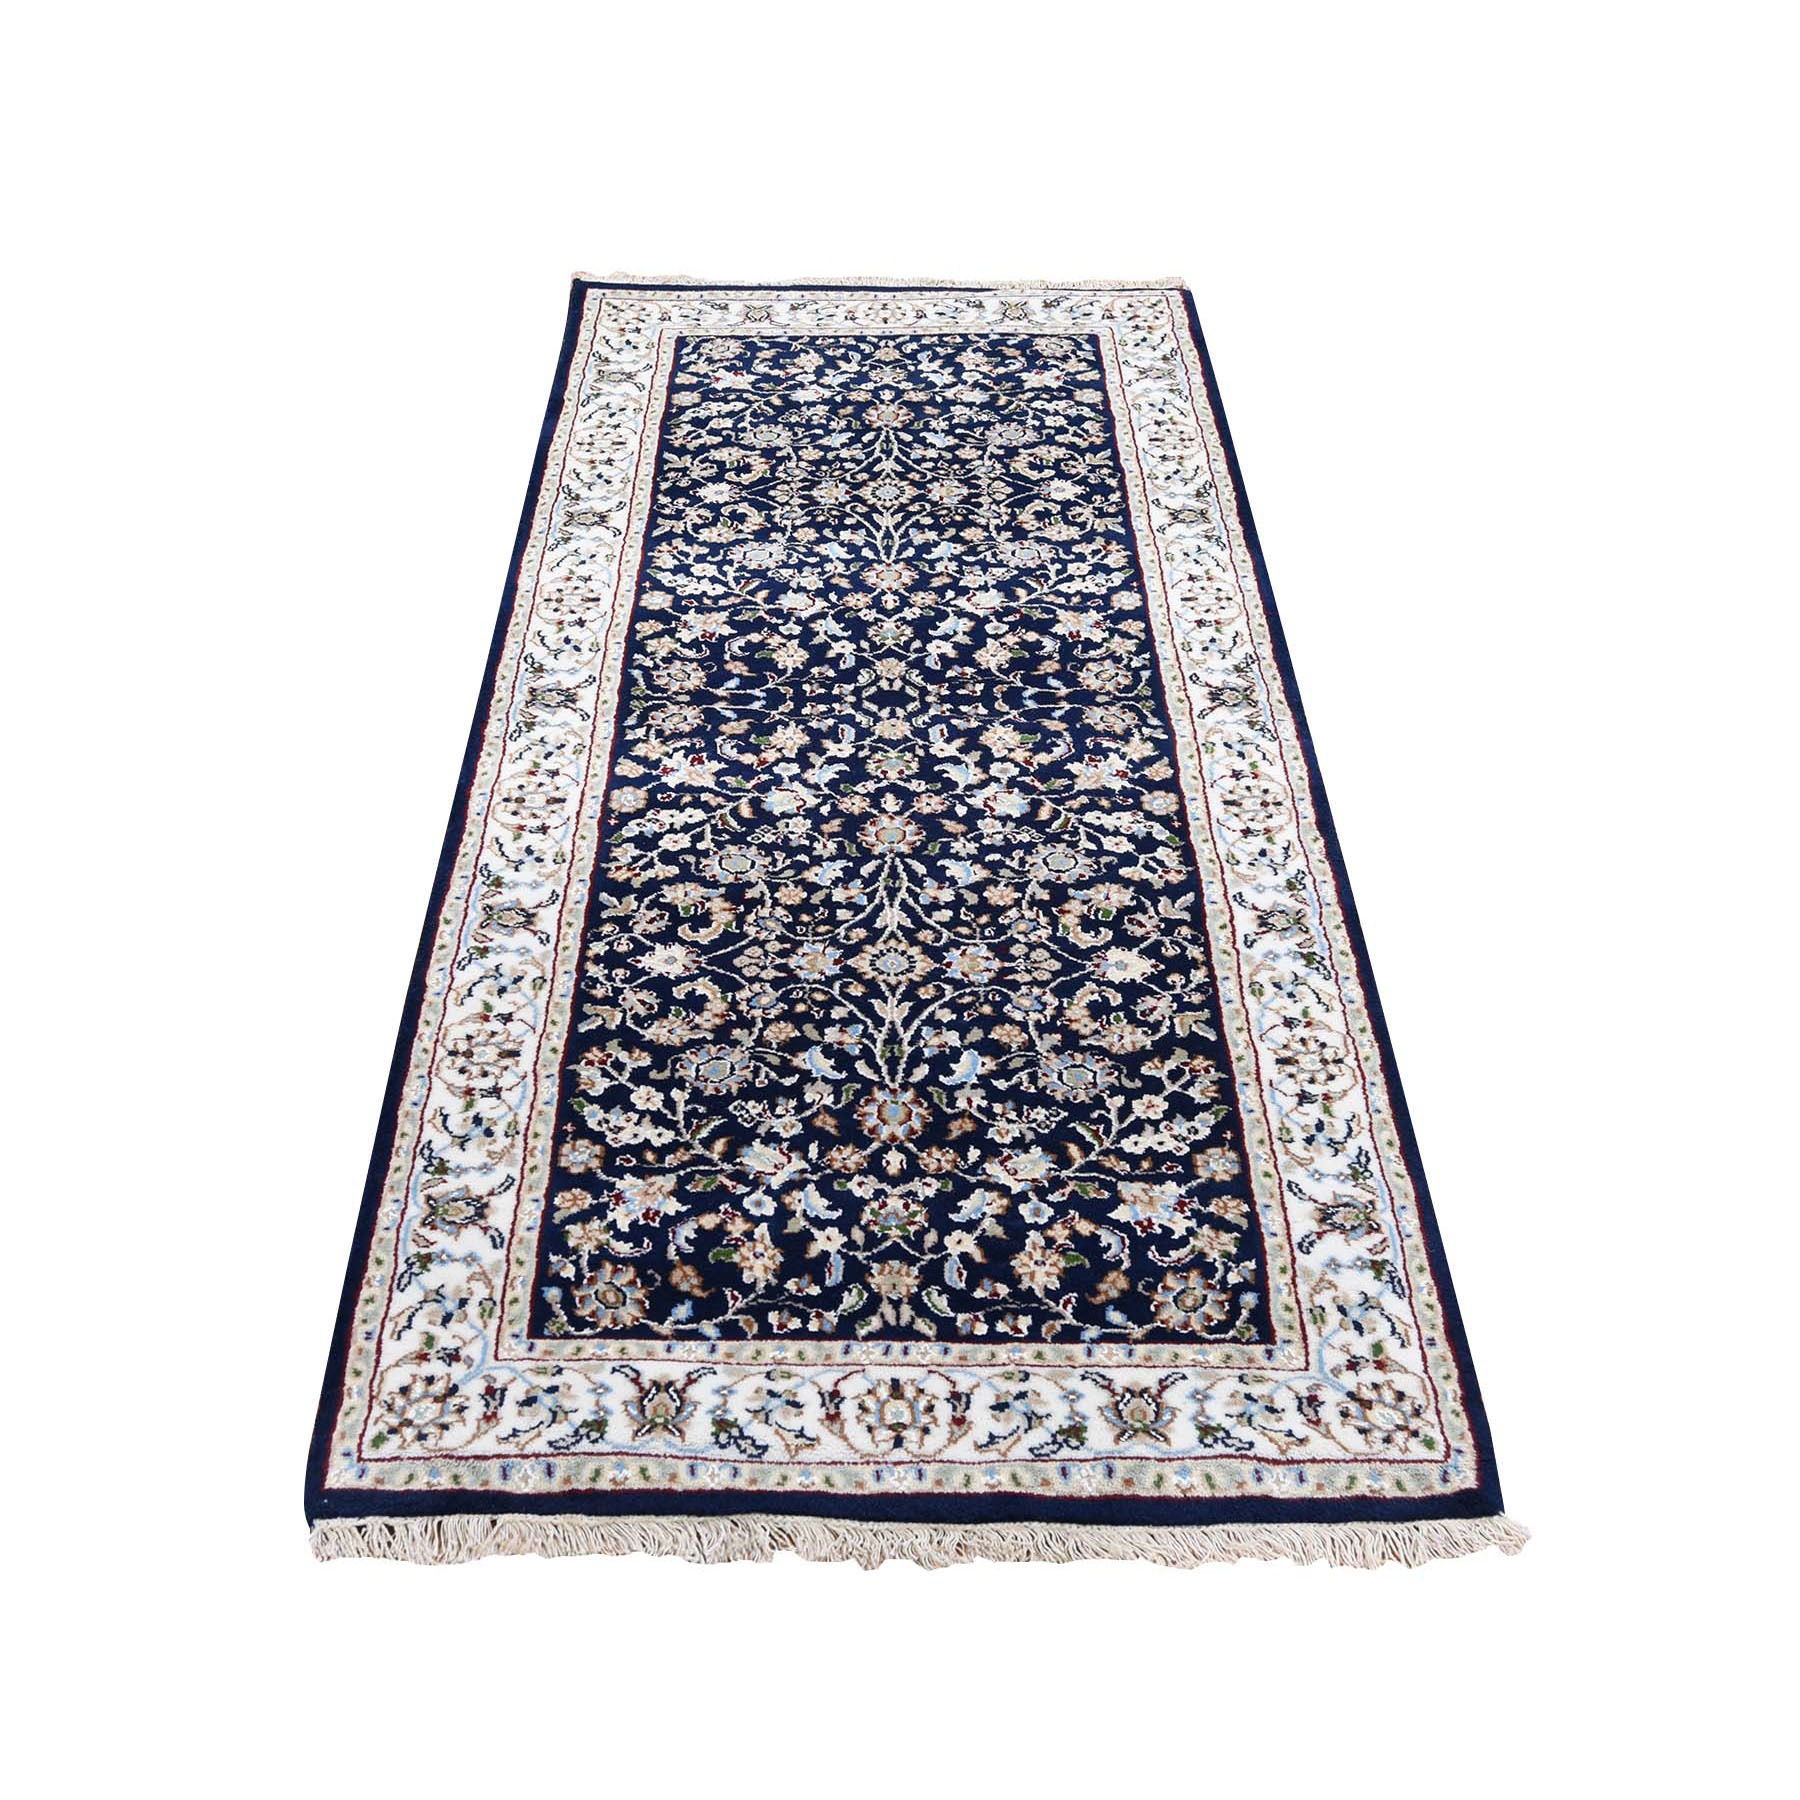 "2'8""x6'1"" Wool And Silk 250 KPSI Navy Blue All Over Design Nain Runner Hand Woven Oriental Rug"